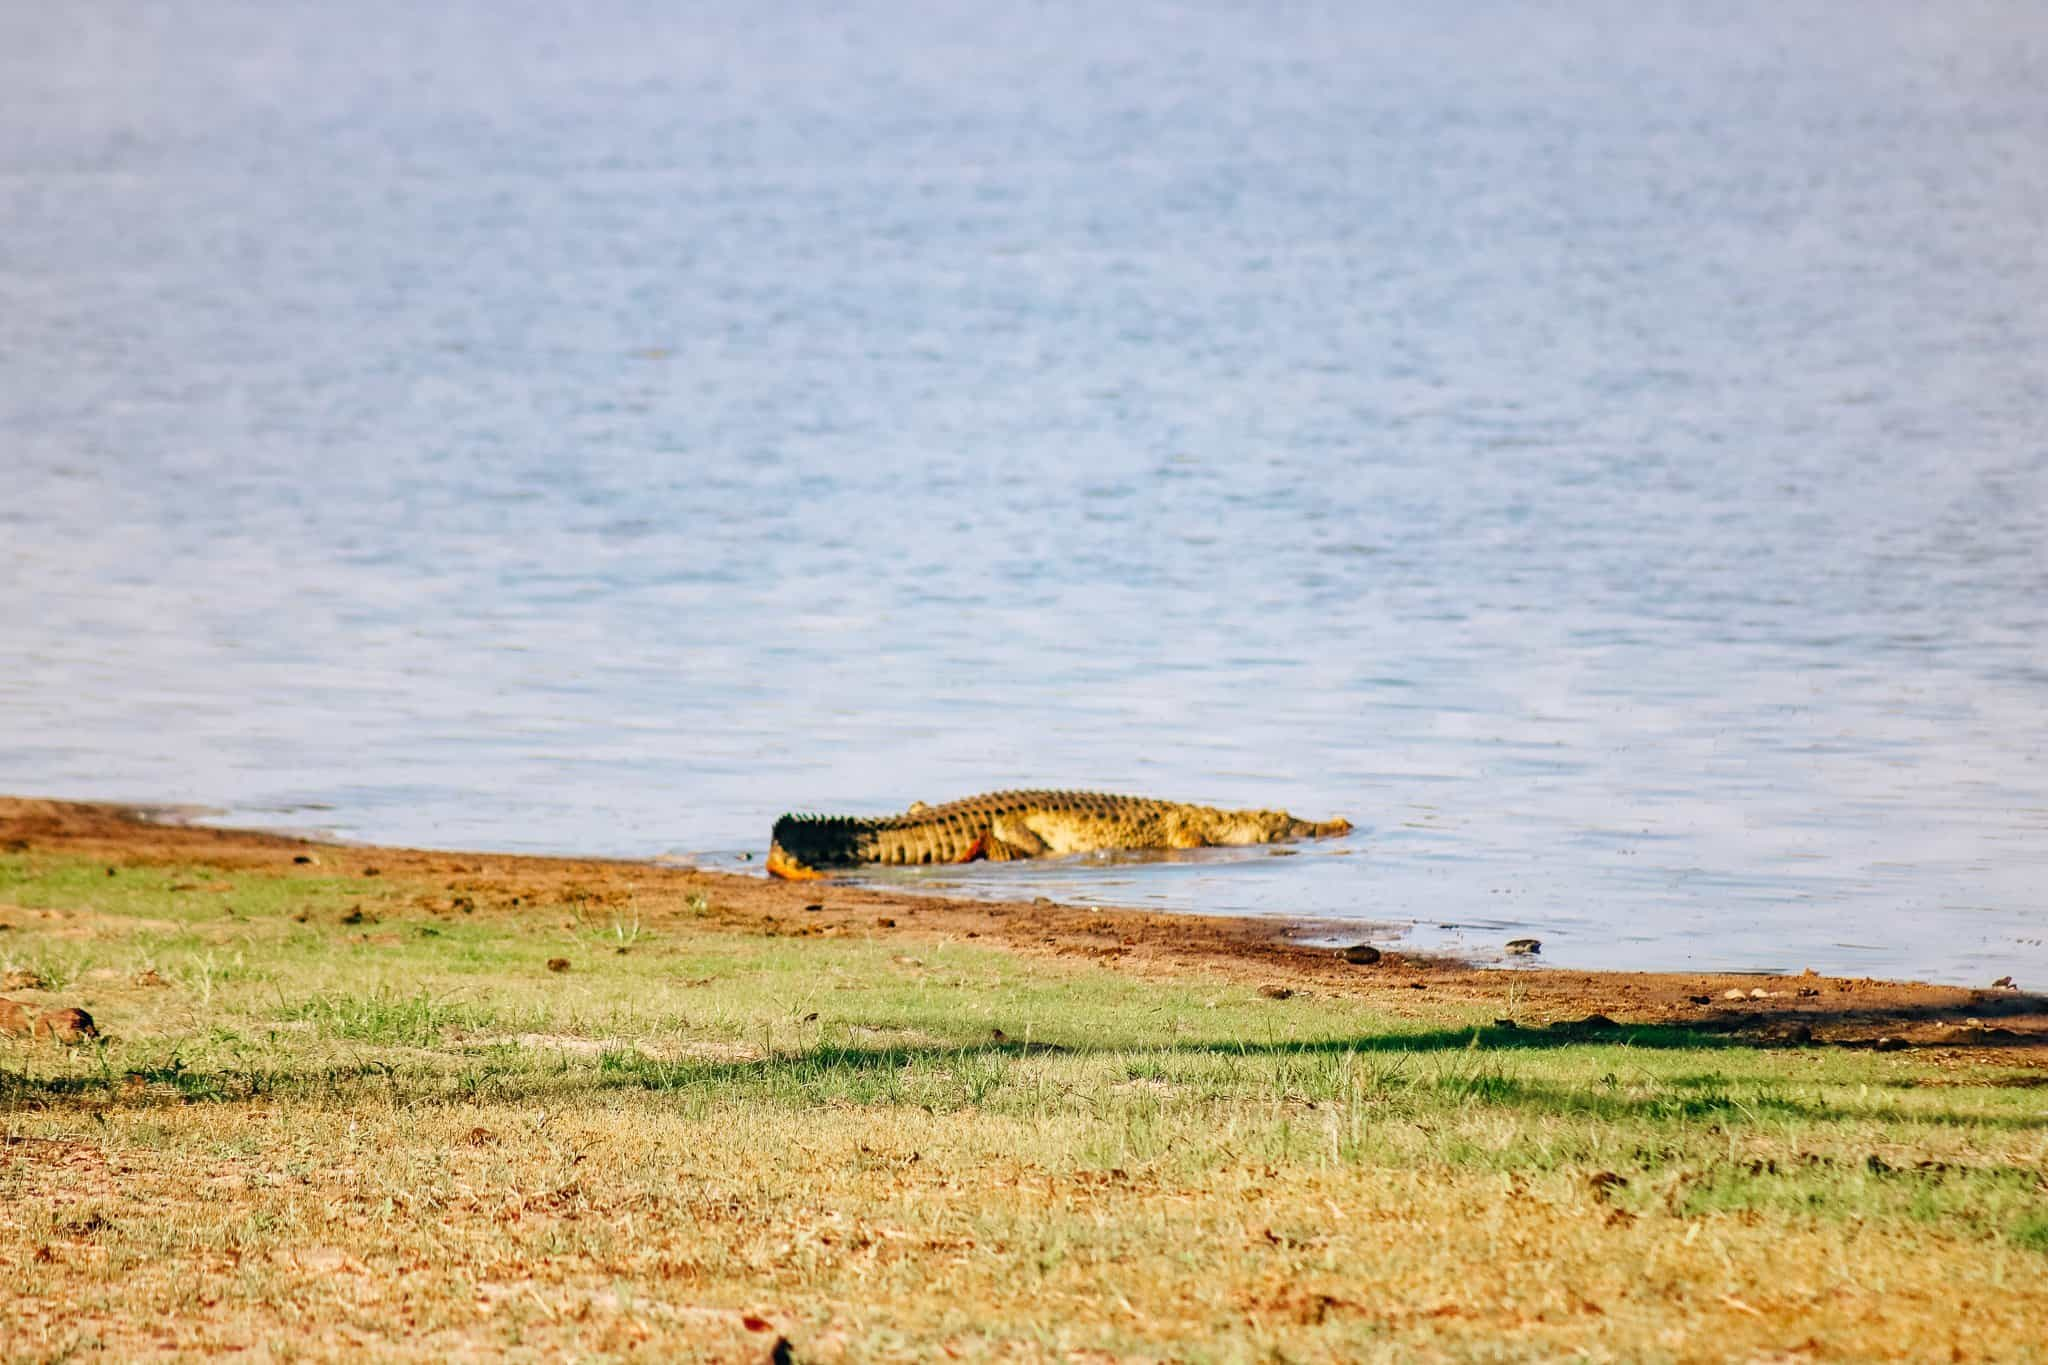 Crocodile on African Safari Drive in the Selous Game Reserve